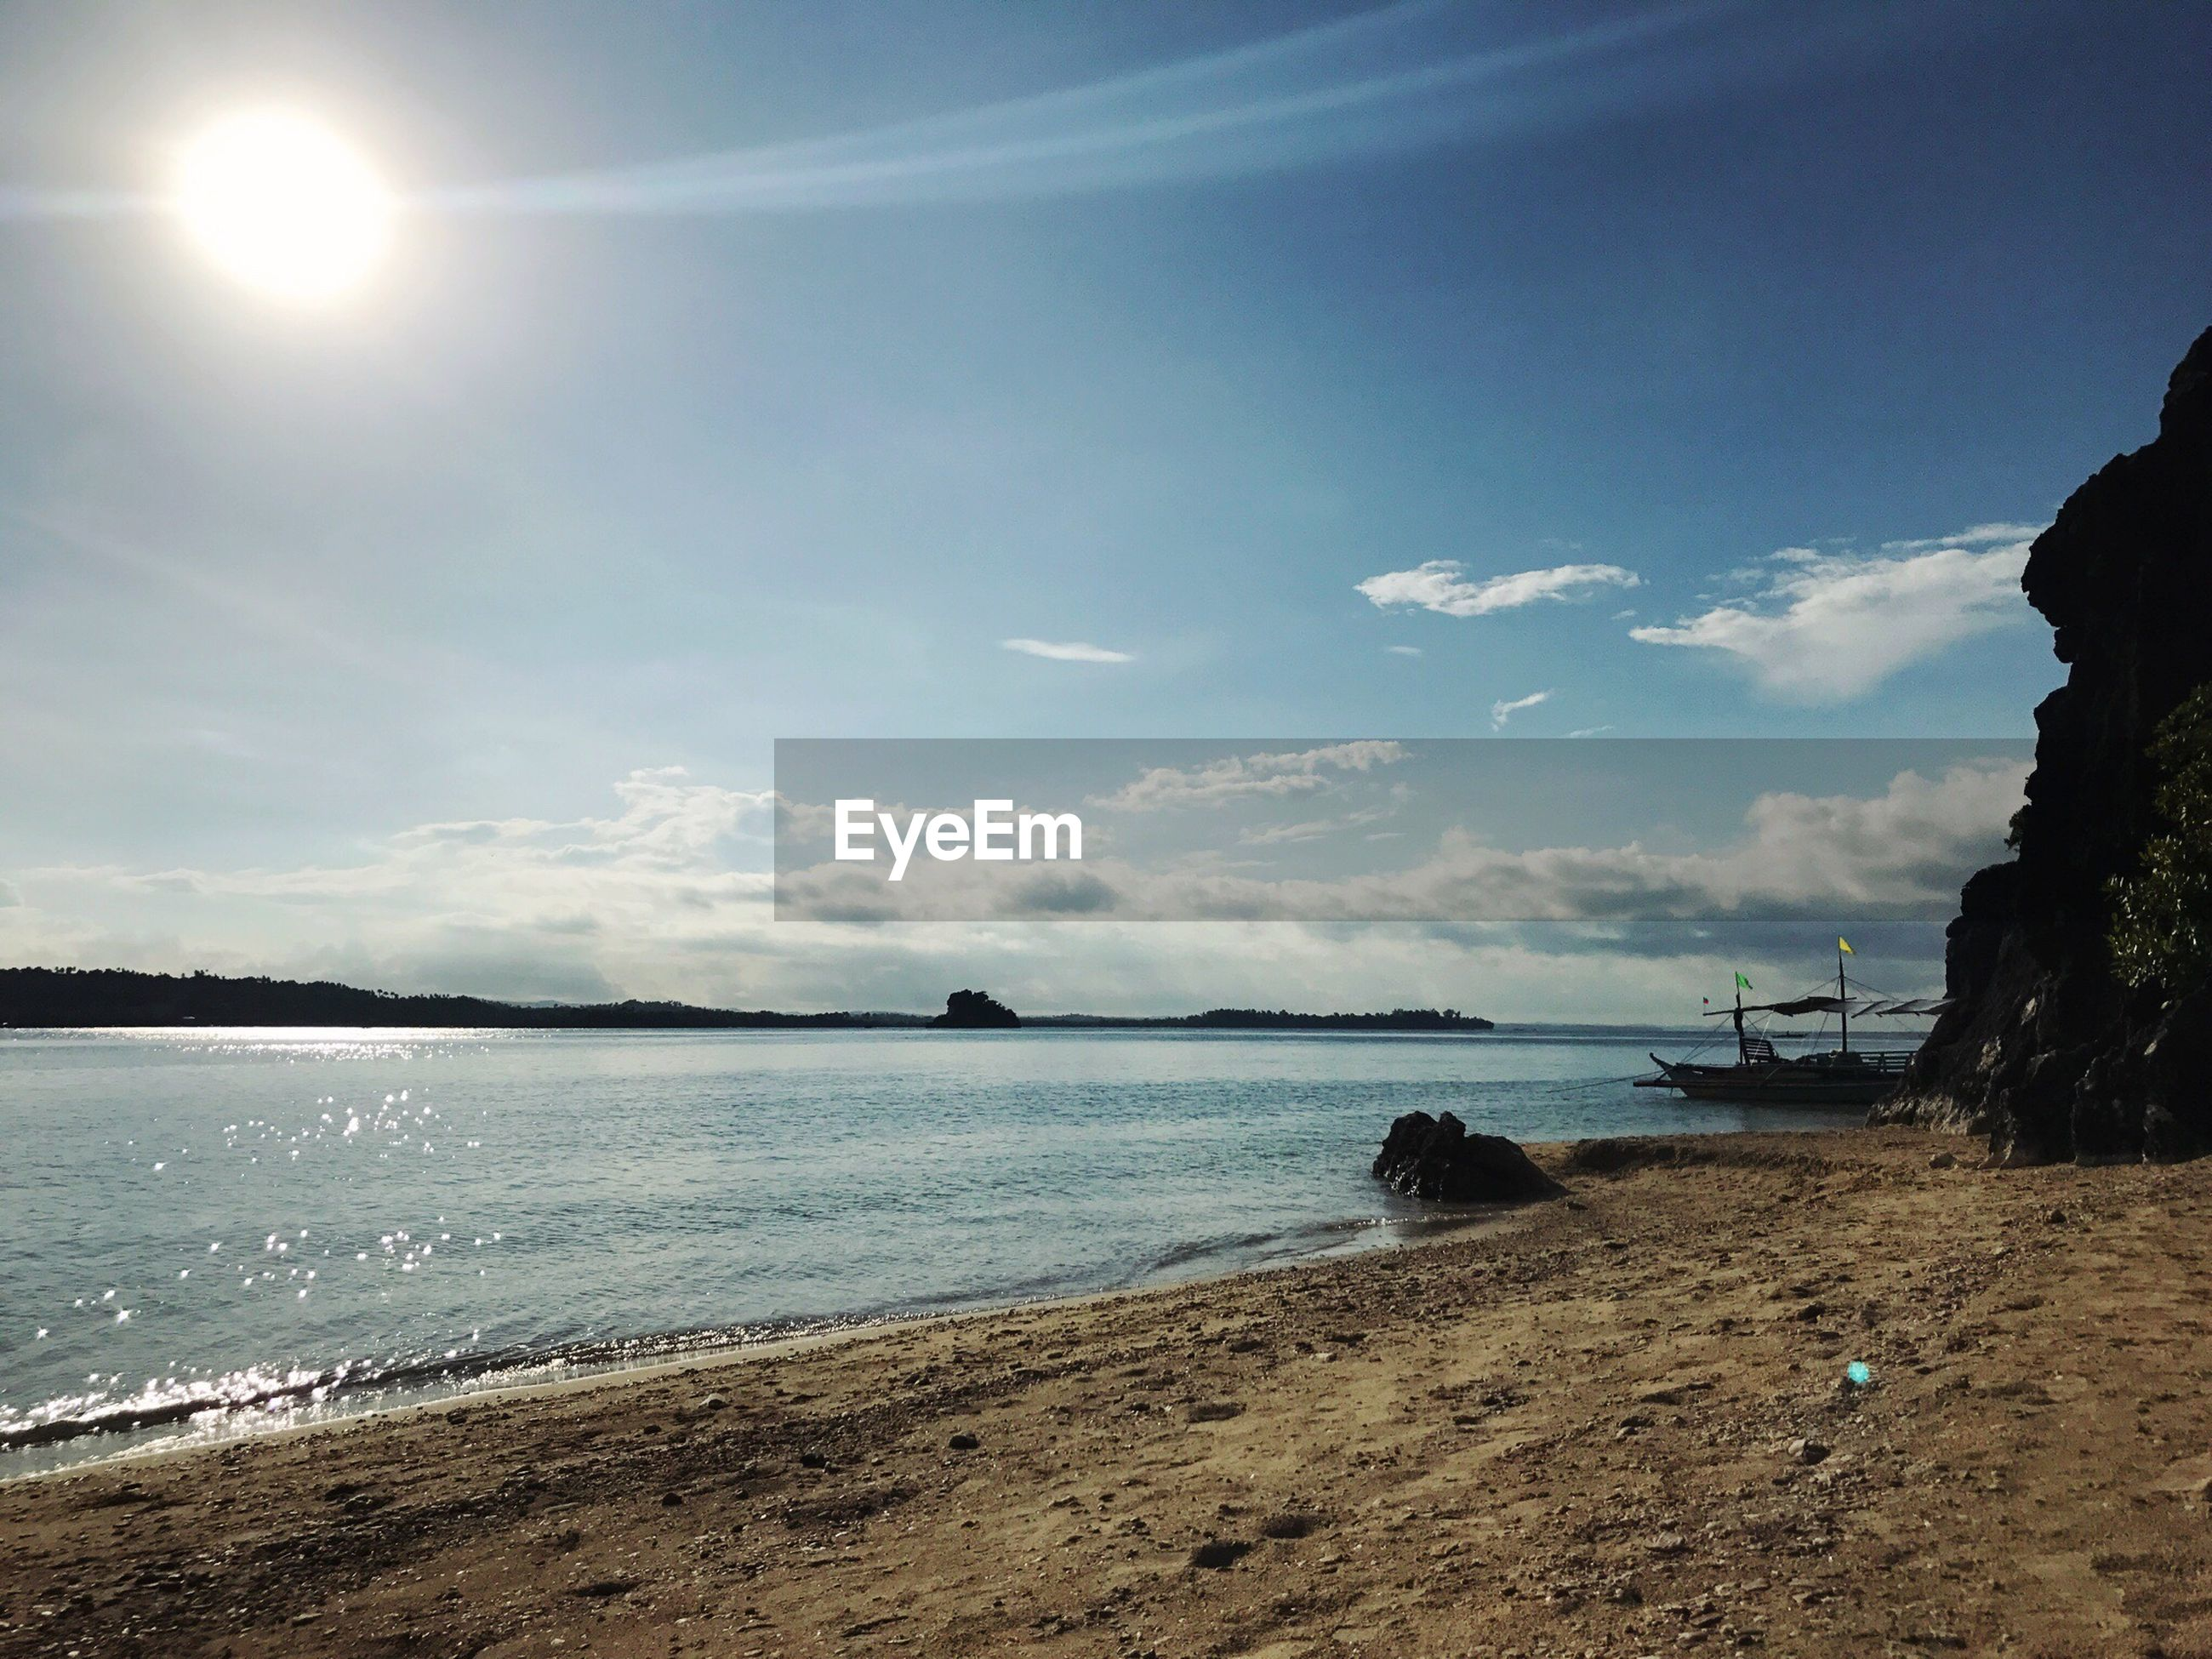 sea, sky, water, beach, nature, sand, sunlight, beauty in nature, scenics, horizon over water, outdoors, sun, tranquility, day, no people